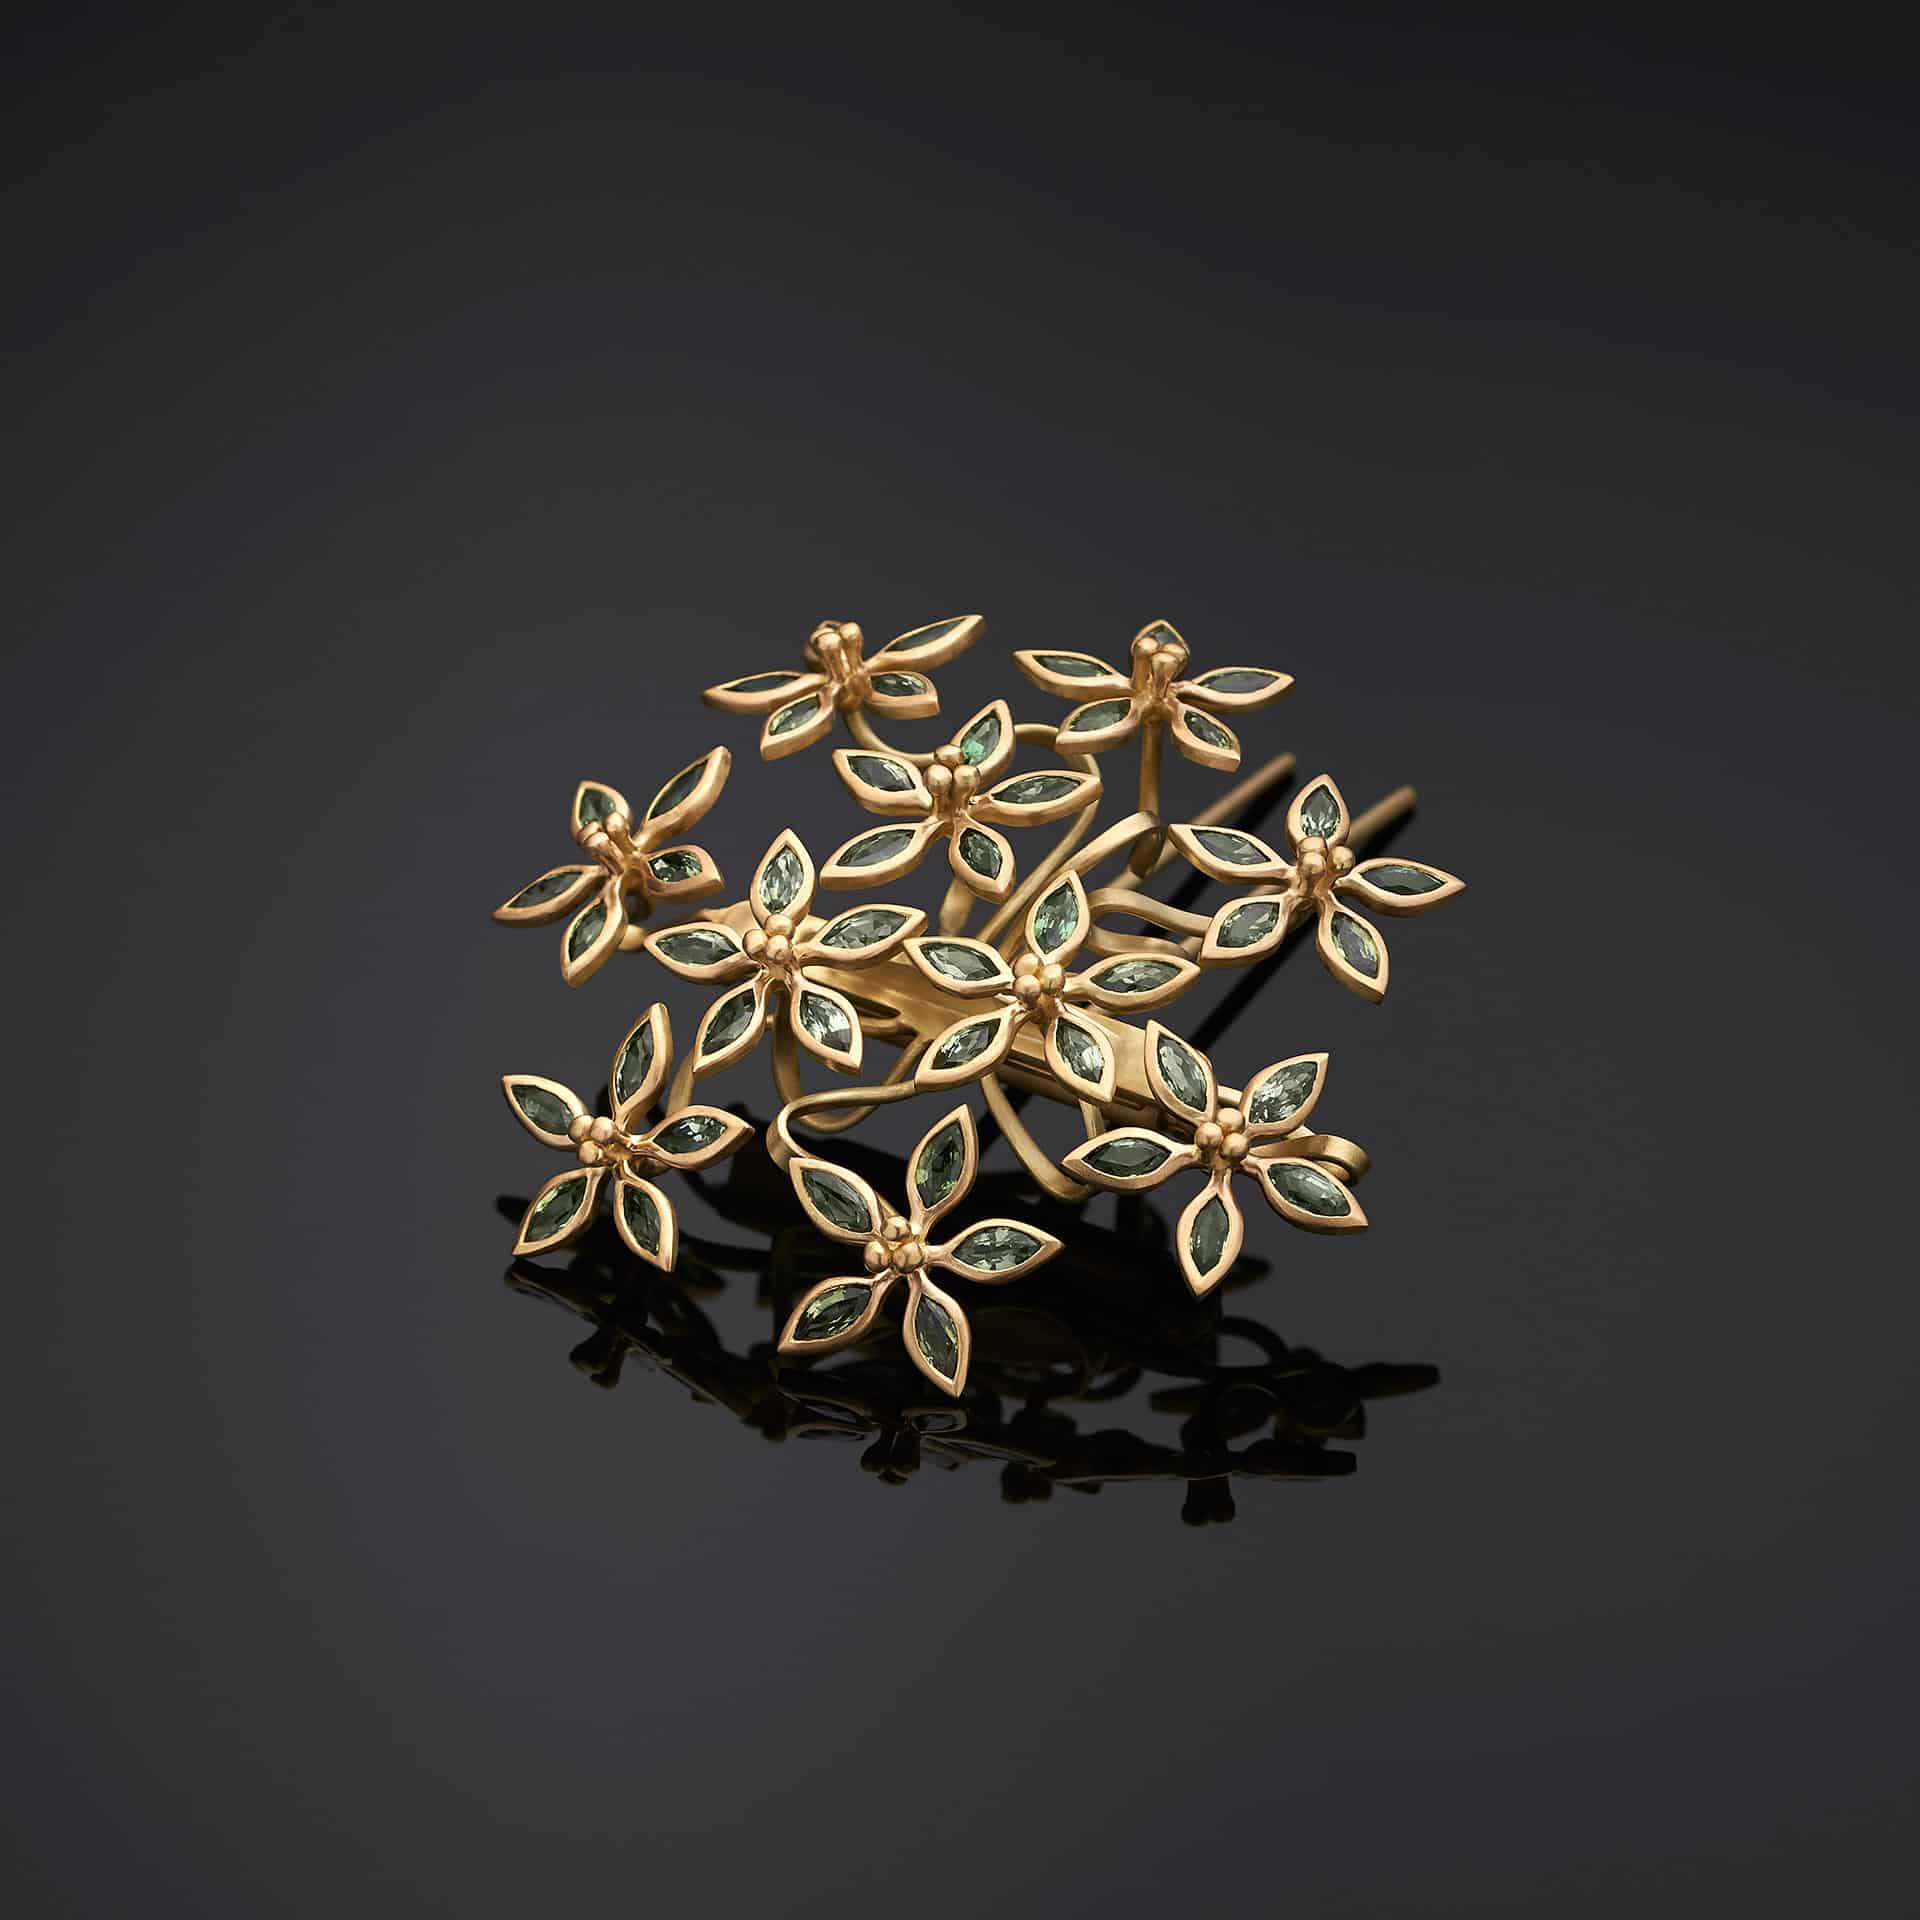 Modular hairpin-brooch in 18k gold set with 50 green sapphires